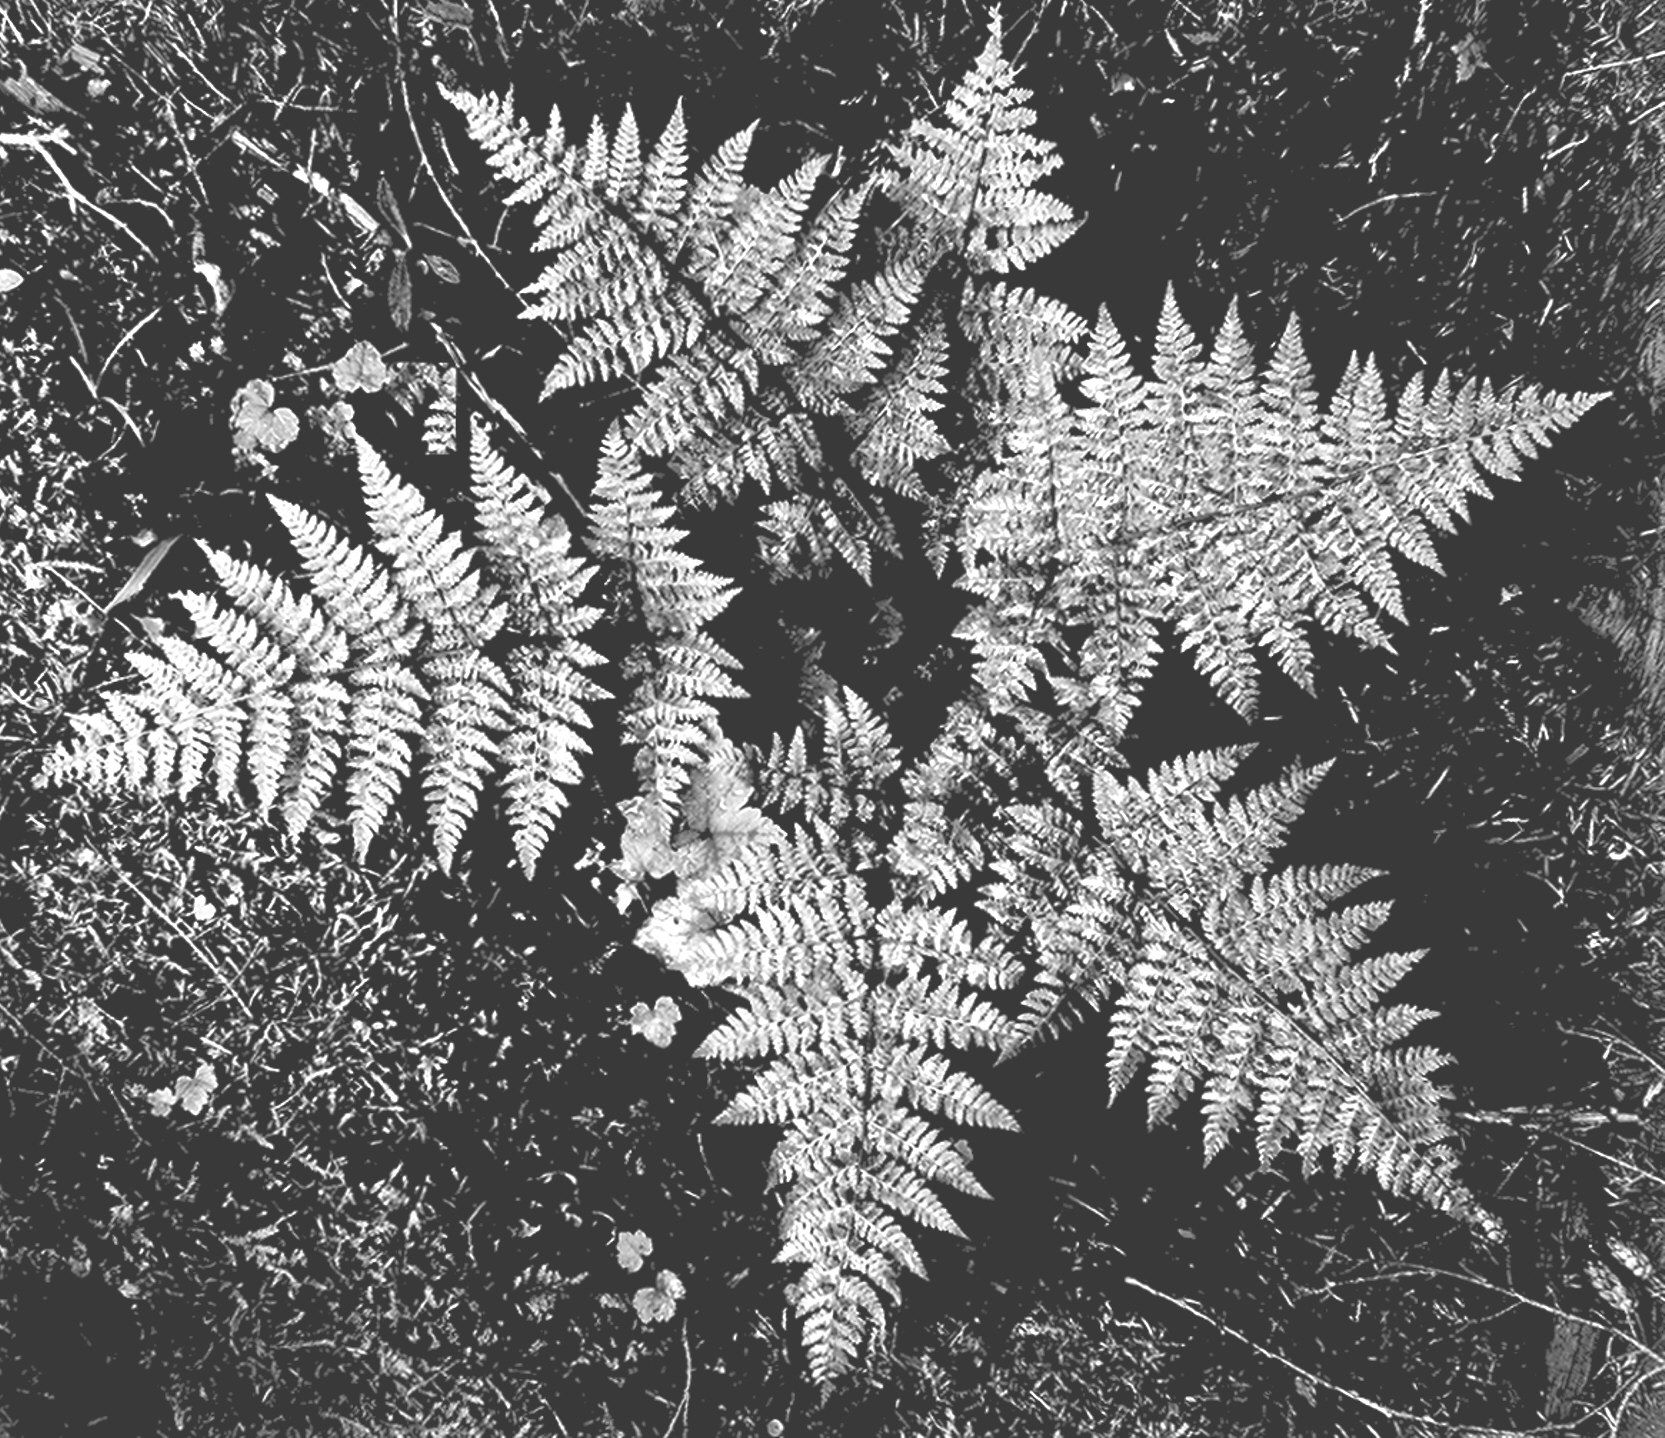 In glacier national park close up of ferns from for Ansel adams the mural project posters